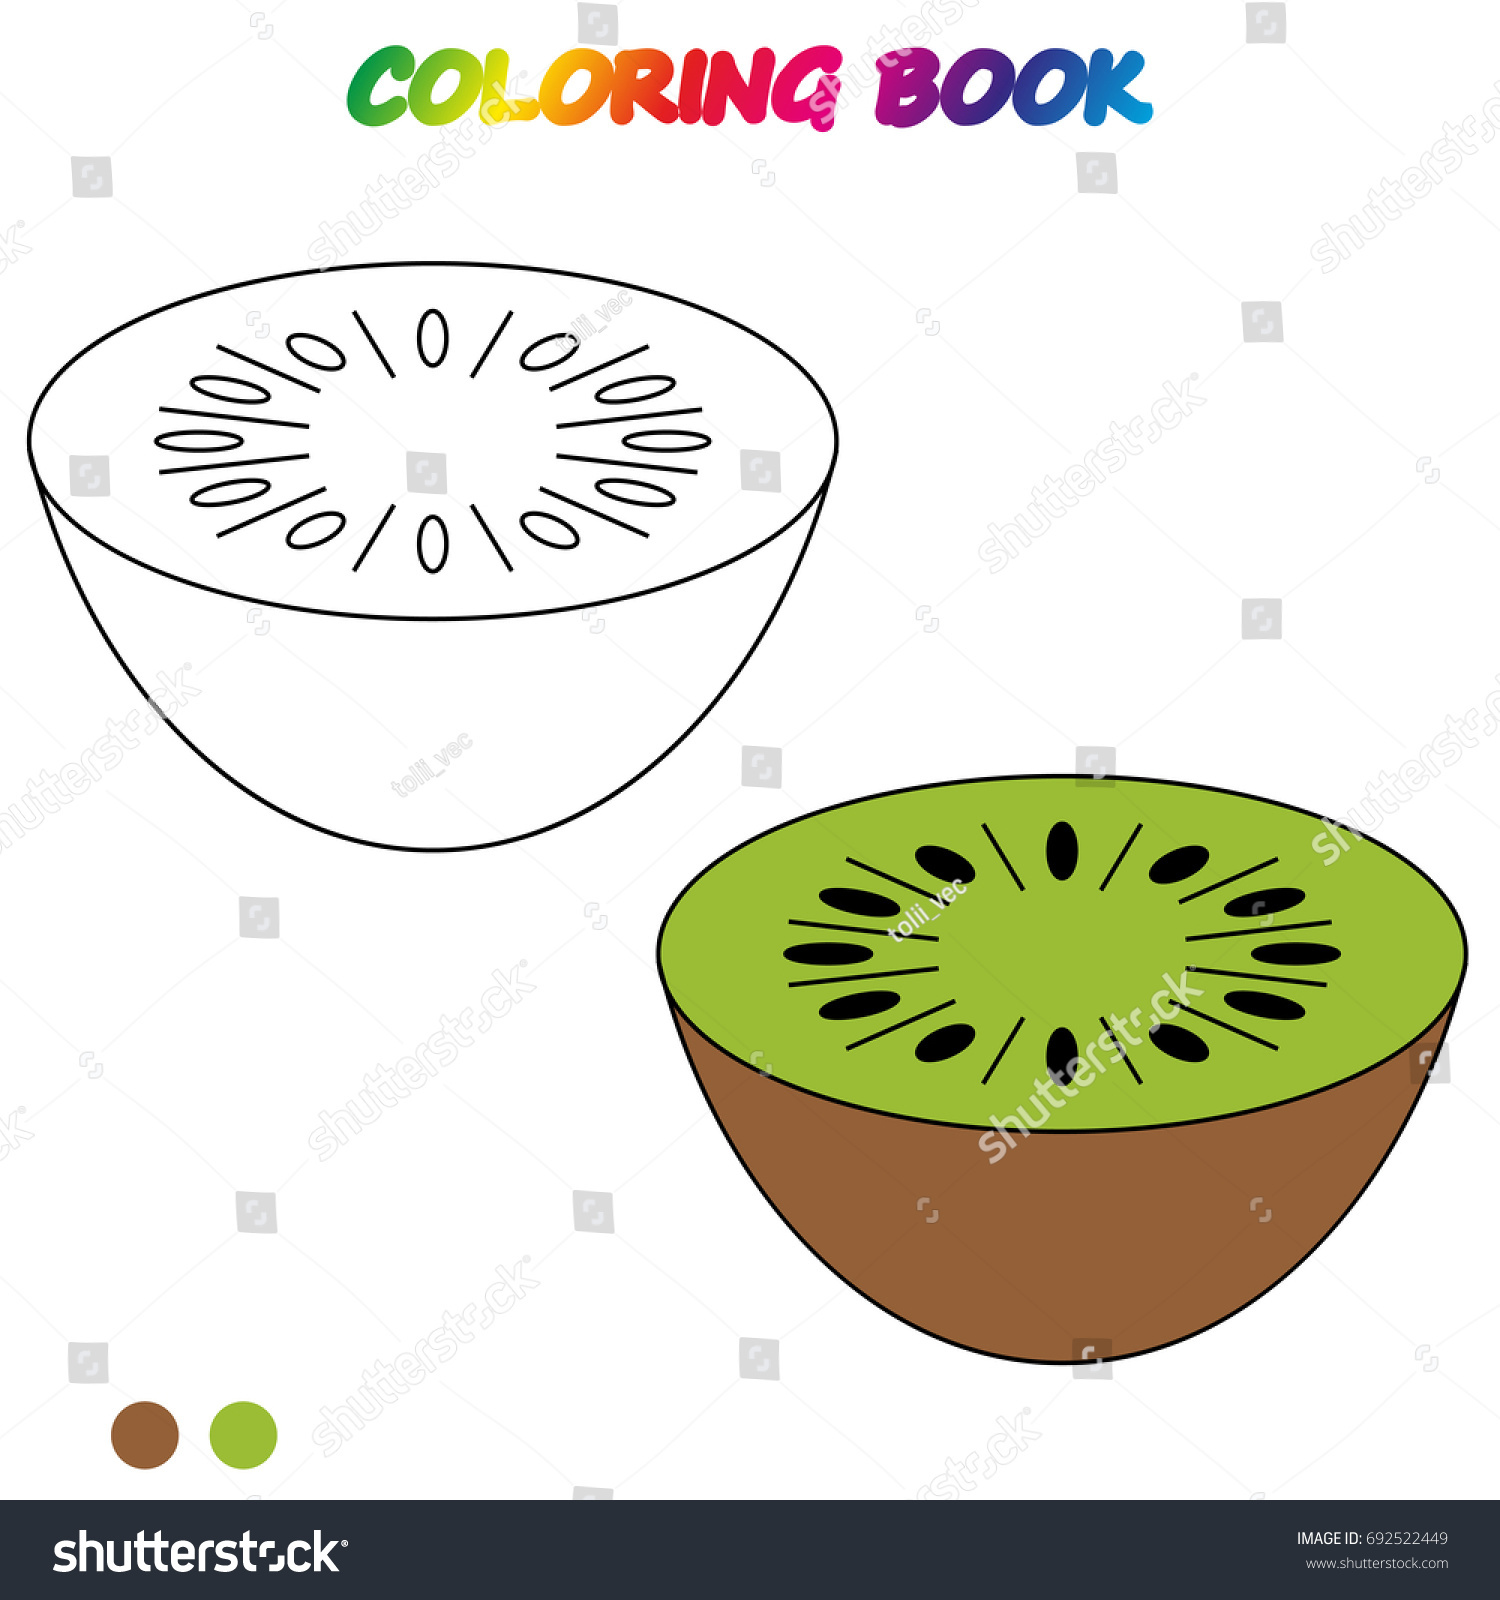 Kiwi Coloring Book Worksheet Game Kids Stock Vector 692522449 ...